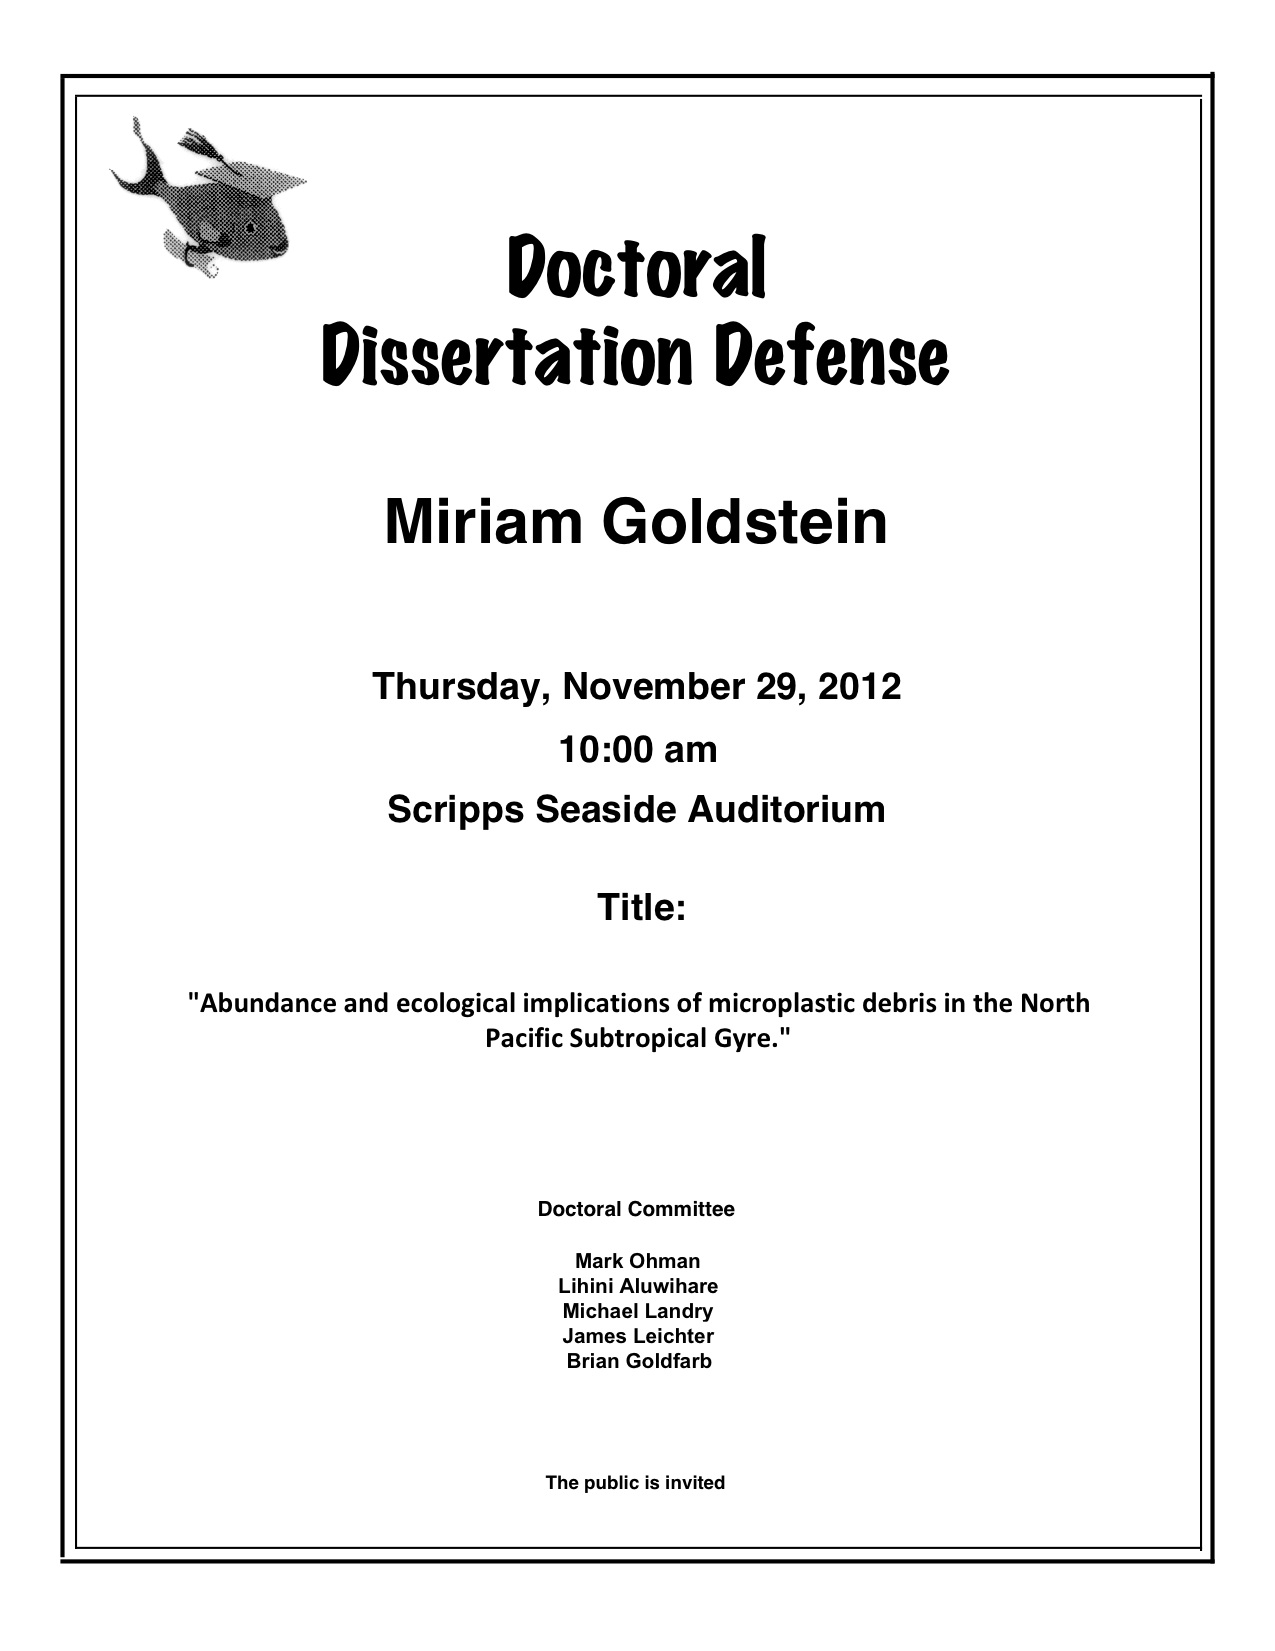 Doctoral dissertation oral defense